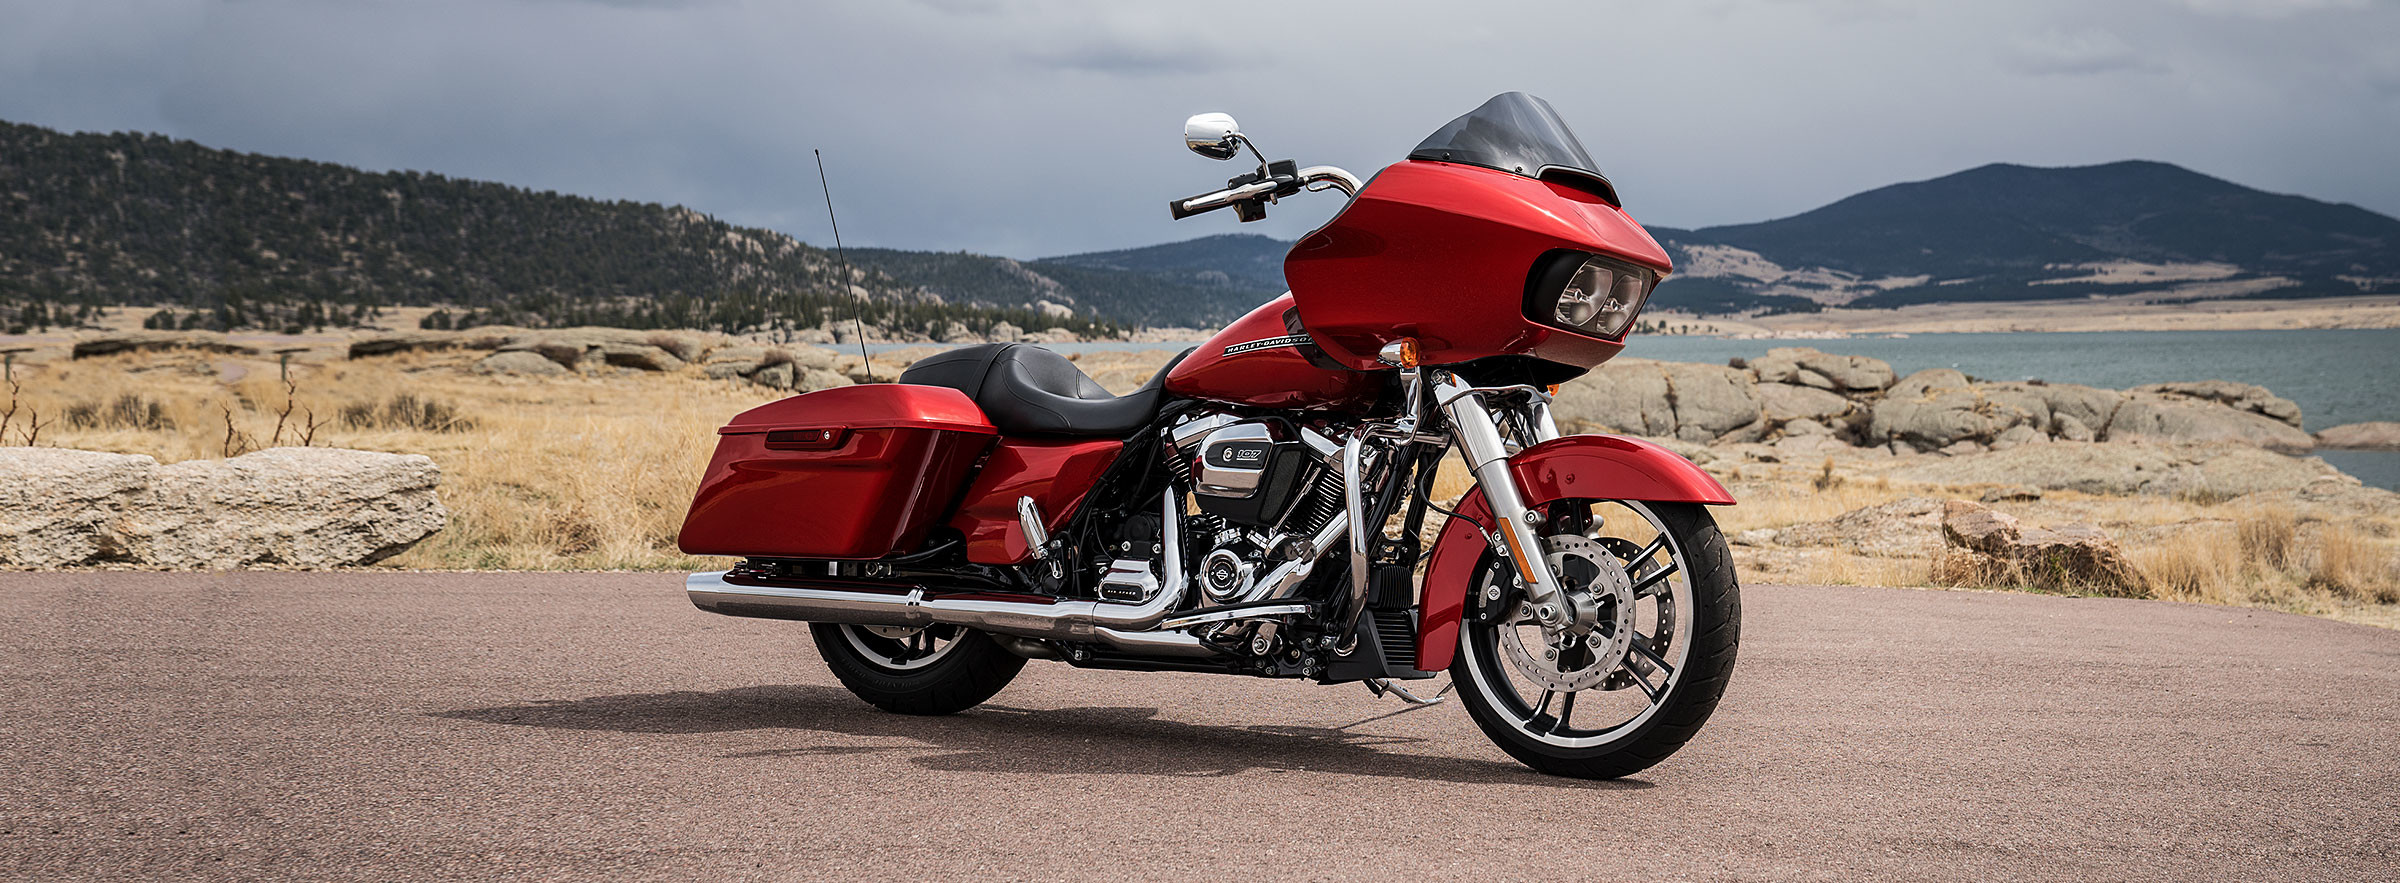 Road Glide<sup>®</sup>